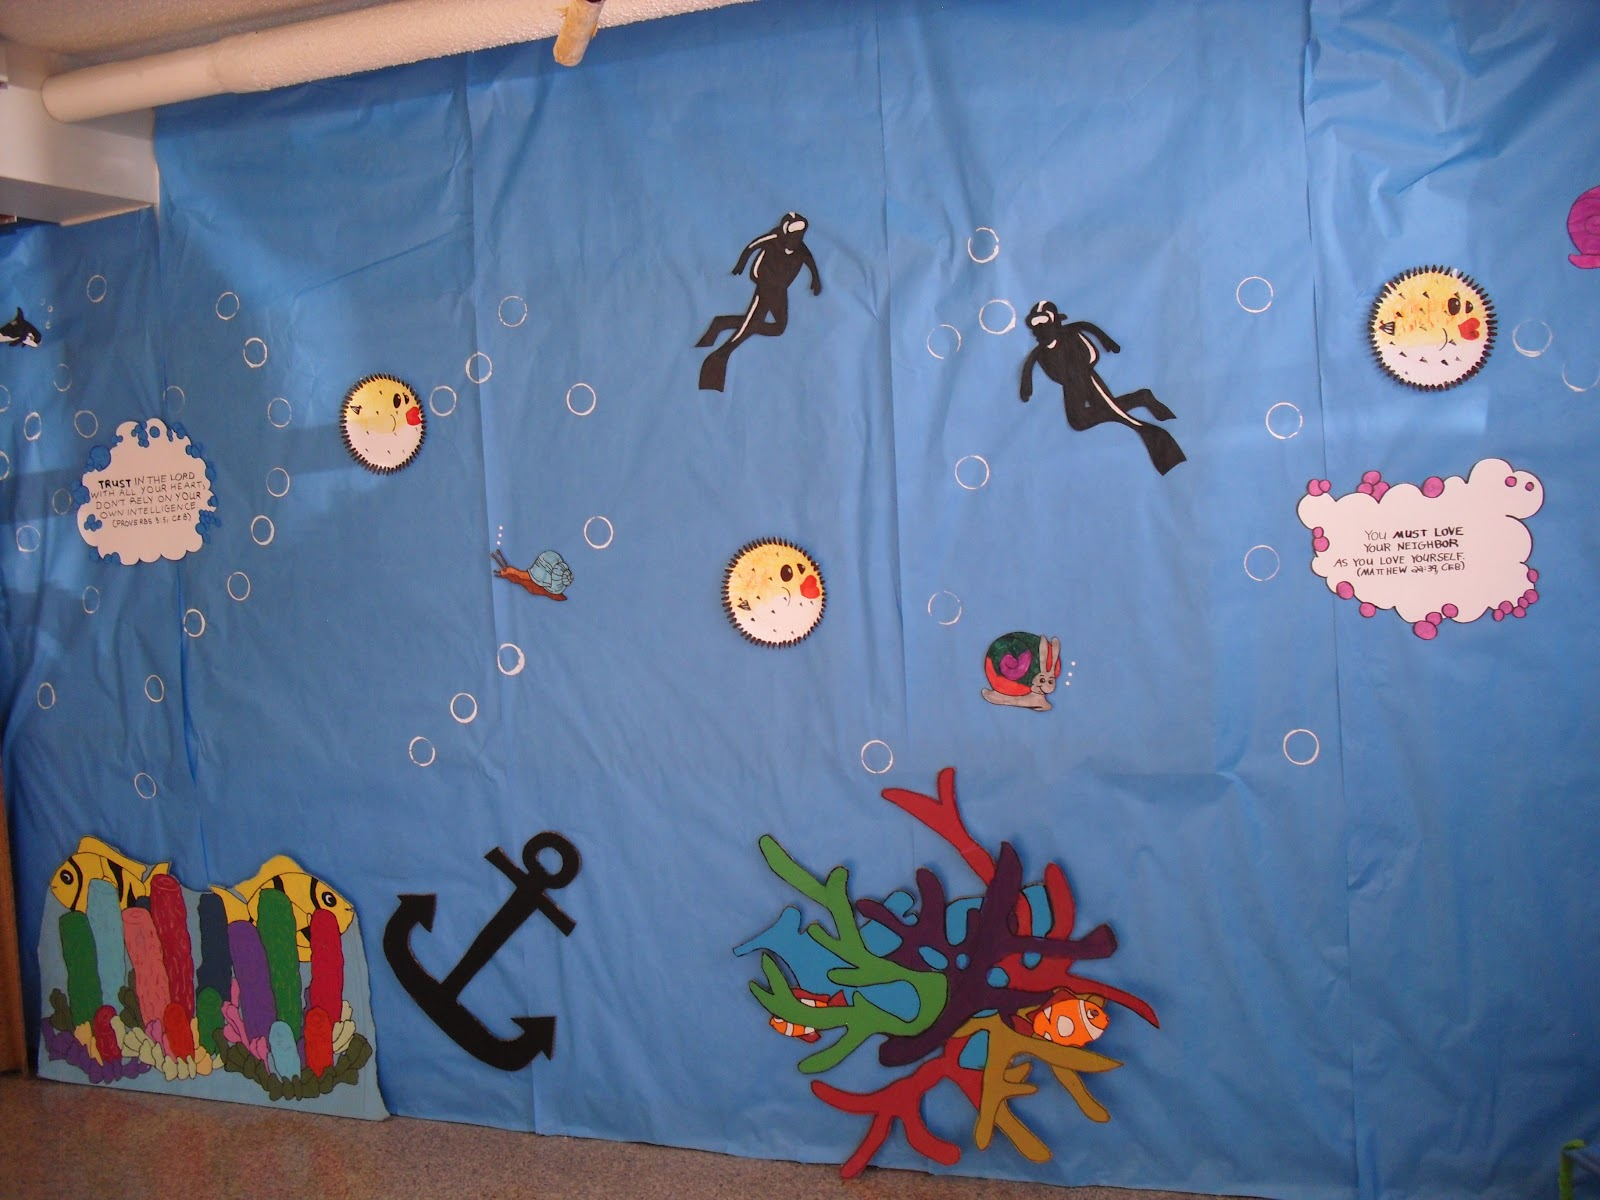 Vacation bible school crafts ideas - Vbs Ideas For Underwater Theme